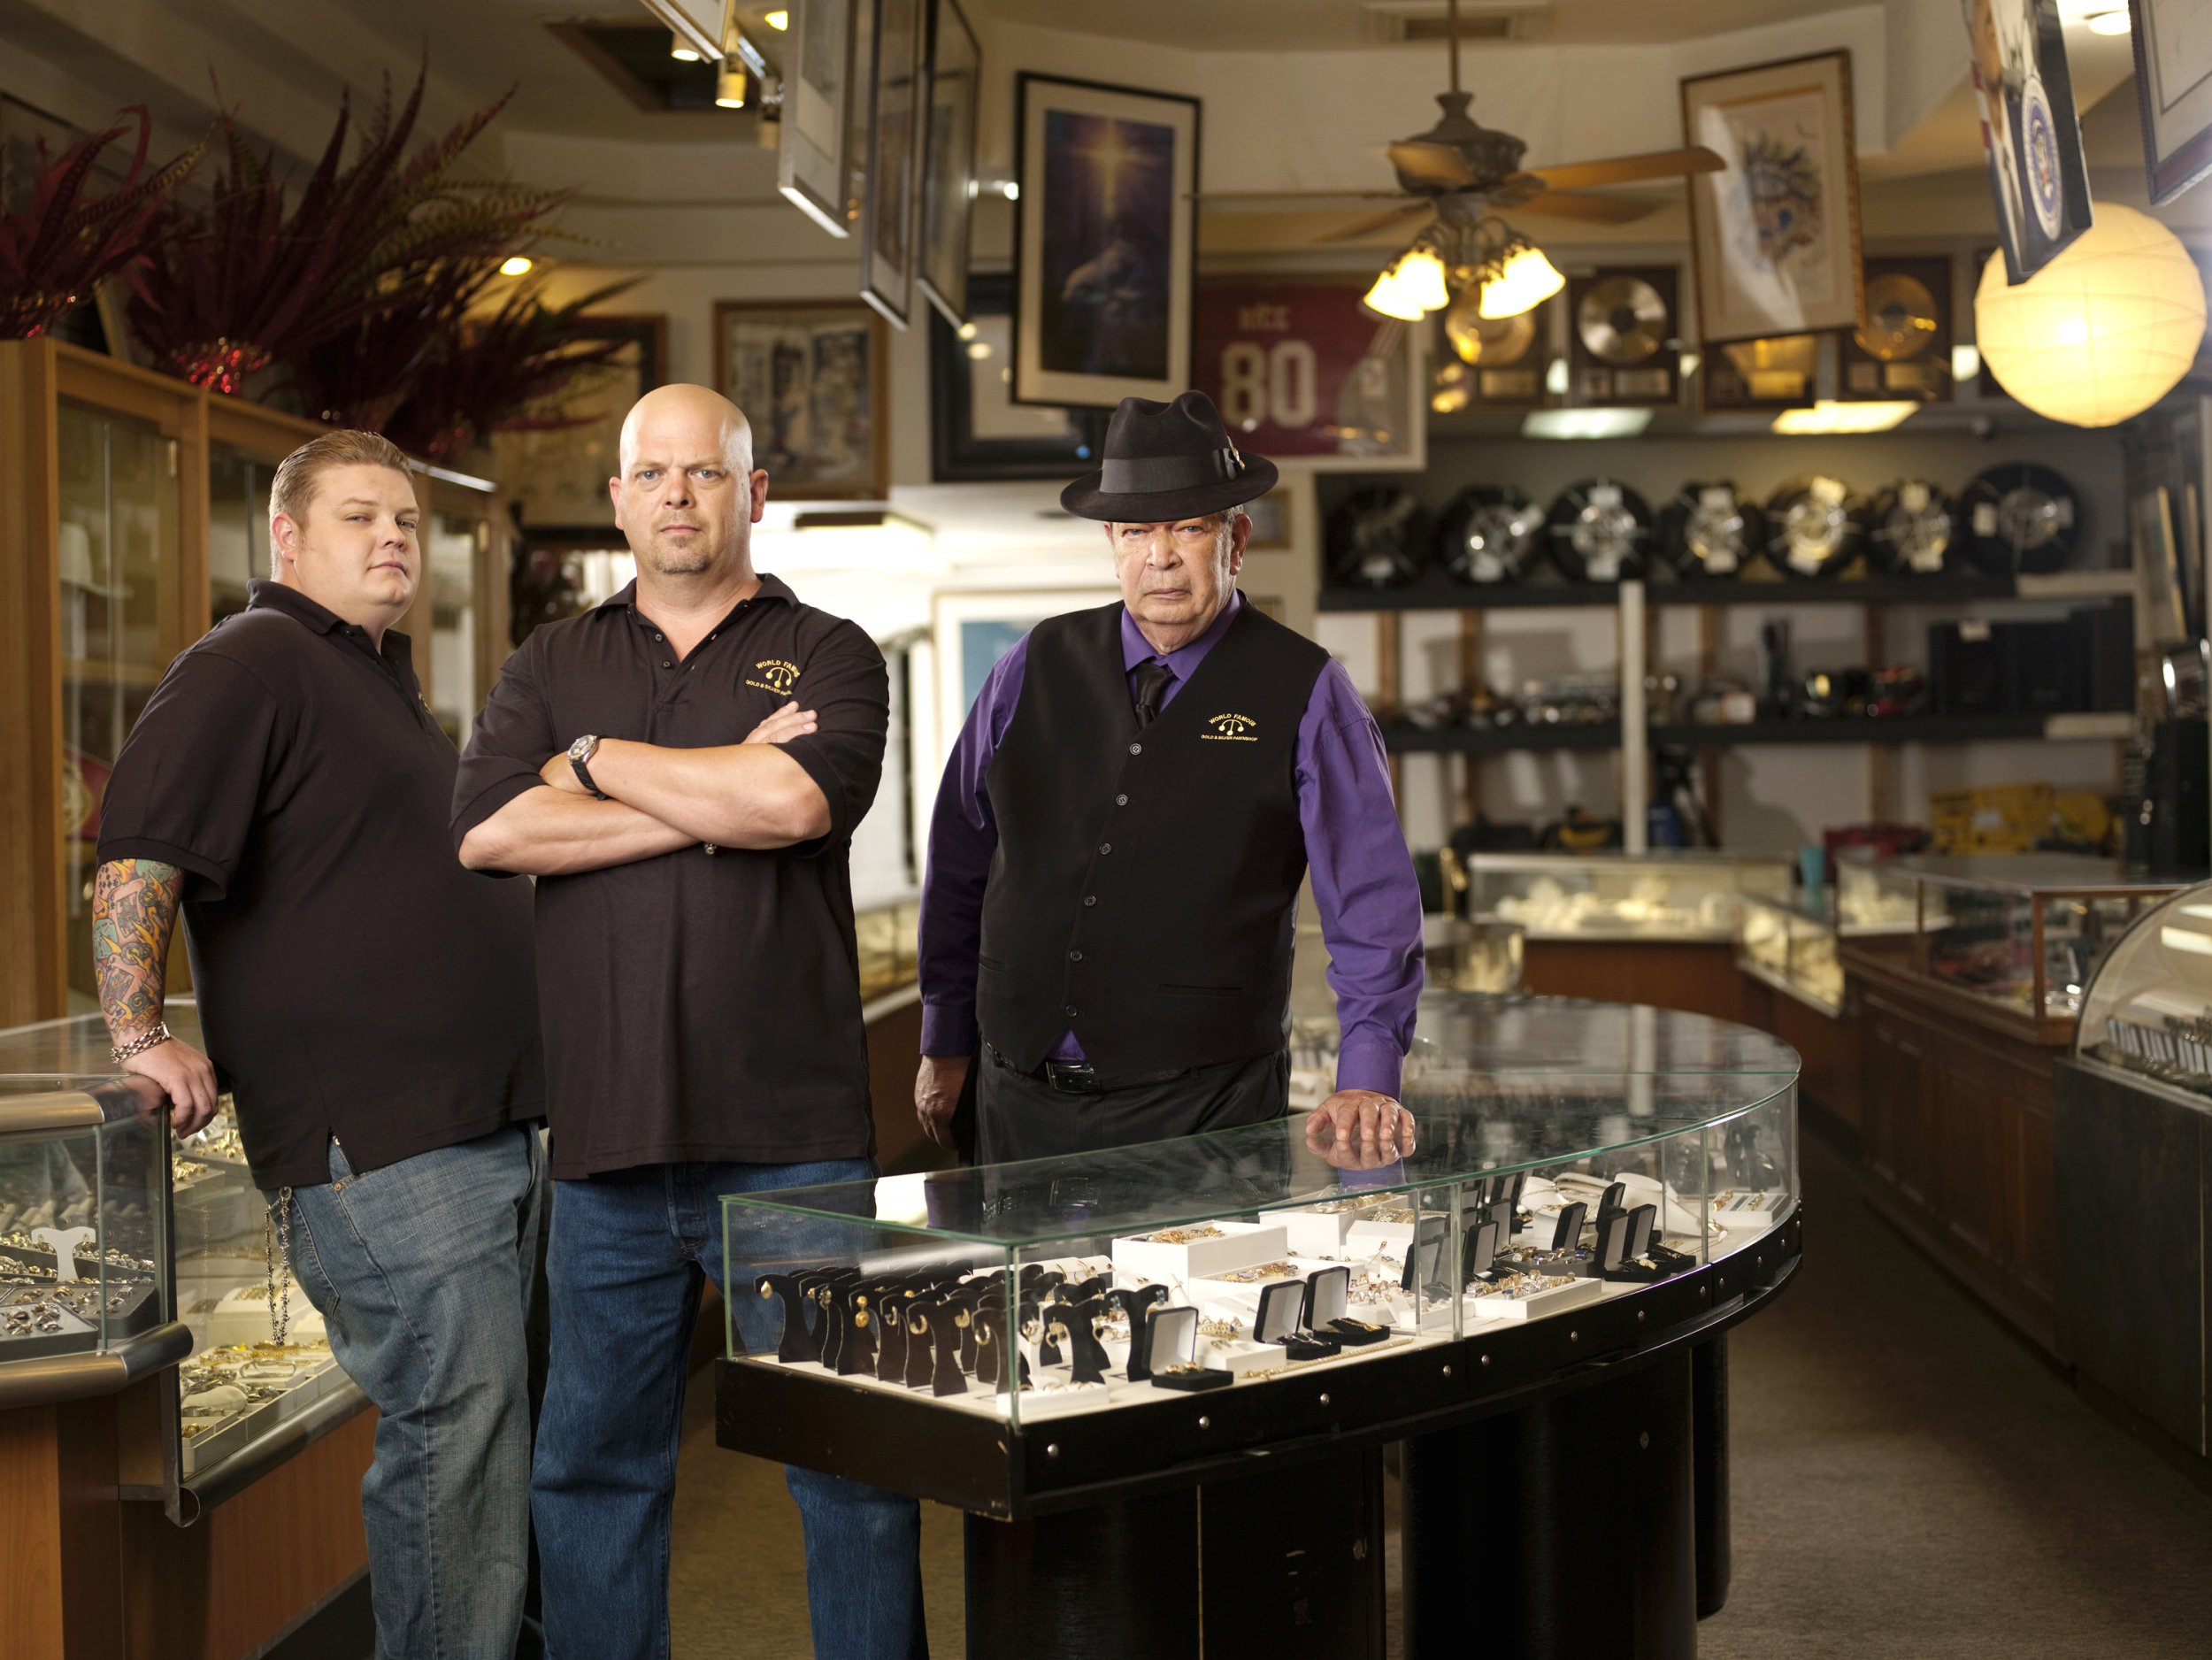 Television Programme: Pawn Stars with Corey Harrison, Rick Harrison and Richard Harrison. Pawn Stars, series 1 Corey Harrison, Rick Harrison, and Richard Harrison. Licensed by Channel 5 broadcasting